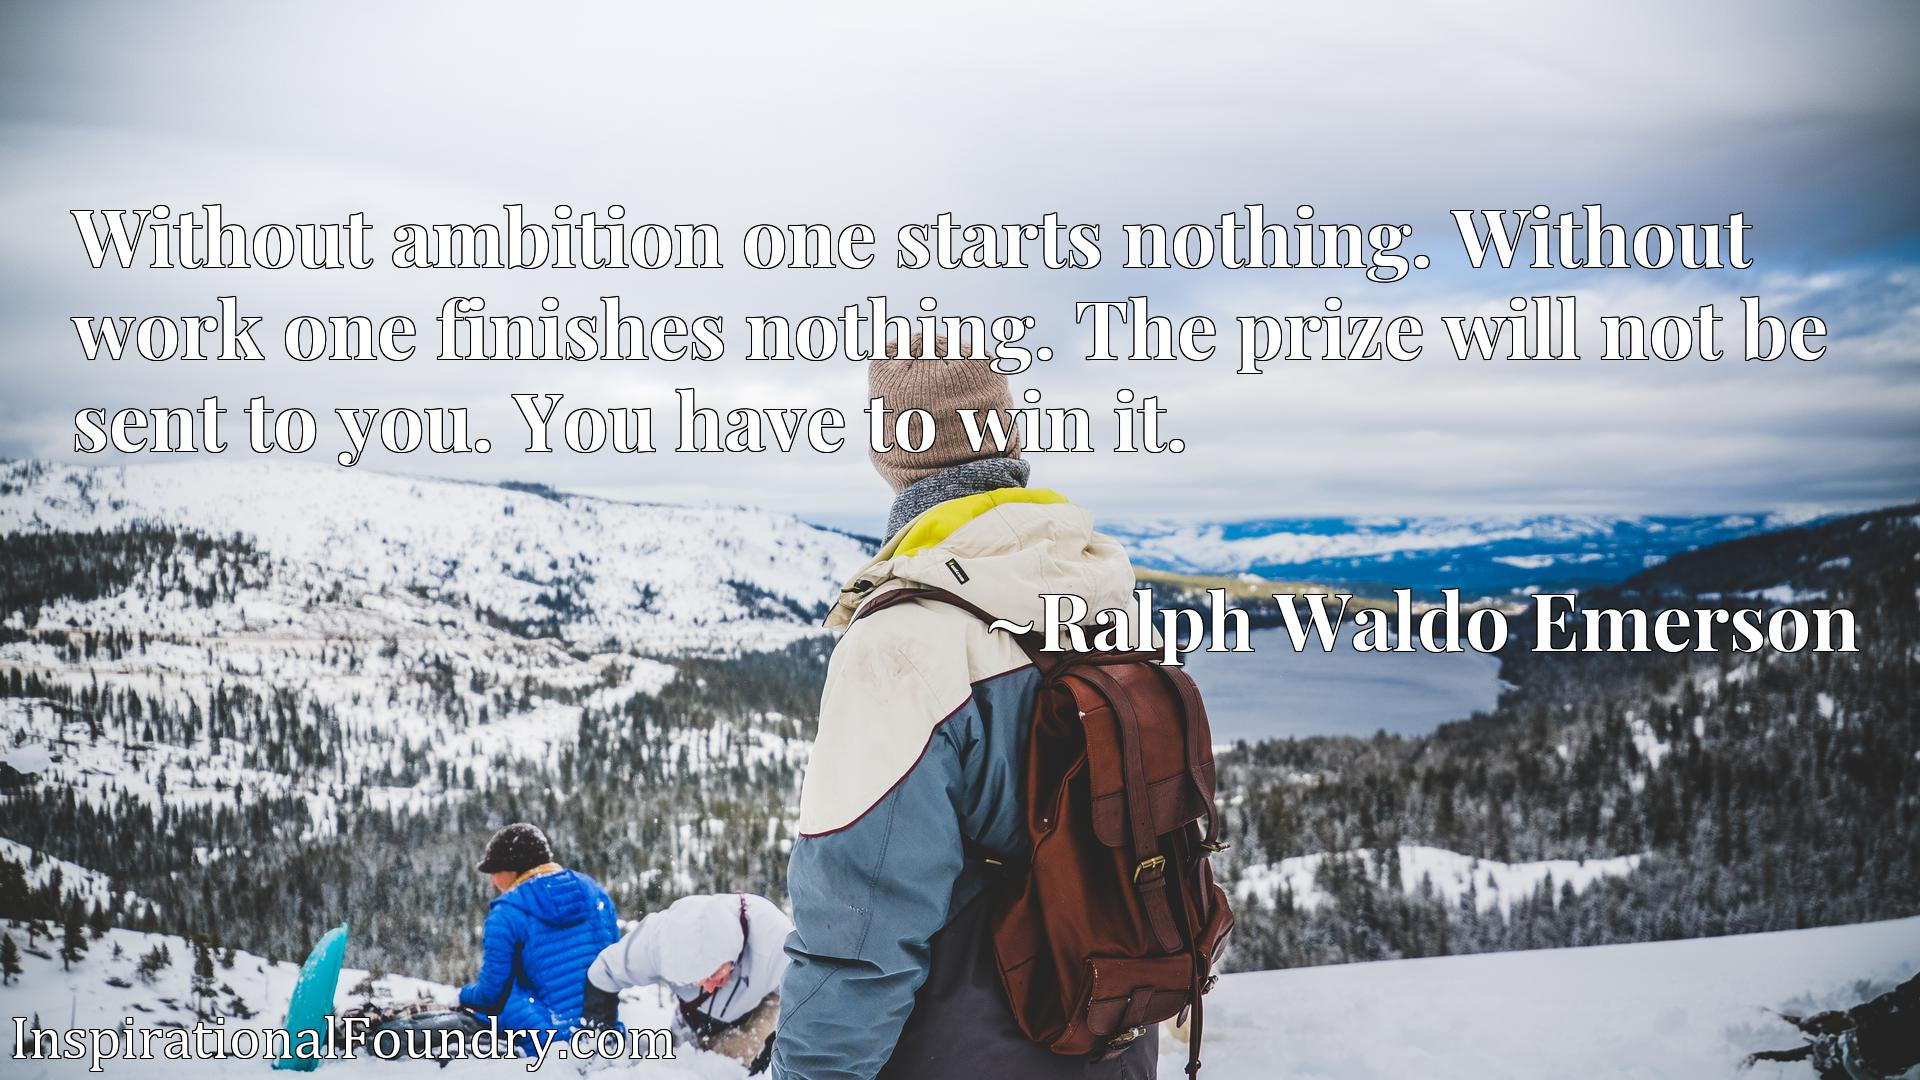 Without ambition one starts nothing. Without work one finishes nothing. The prize will not be sent to you. You have to win it.